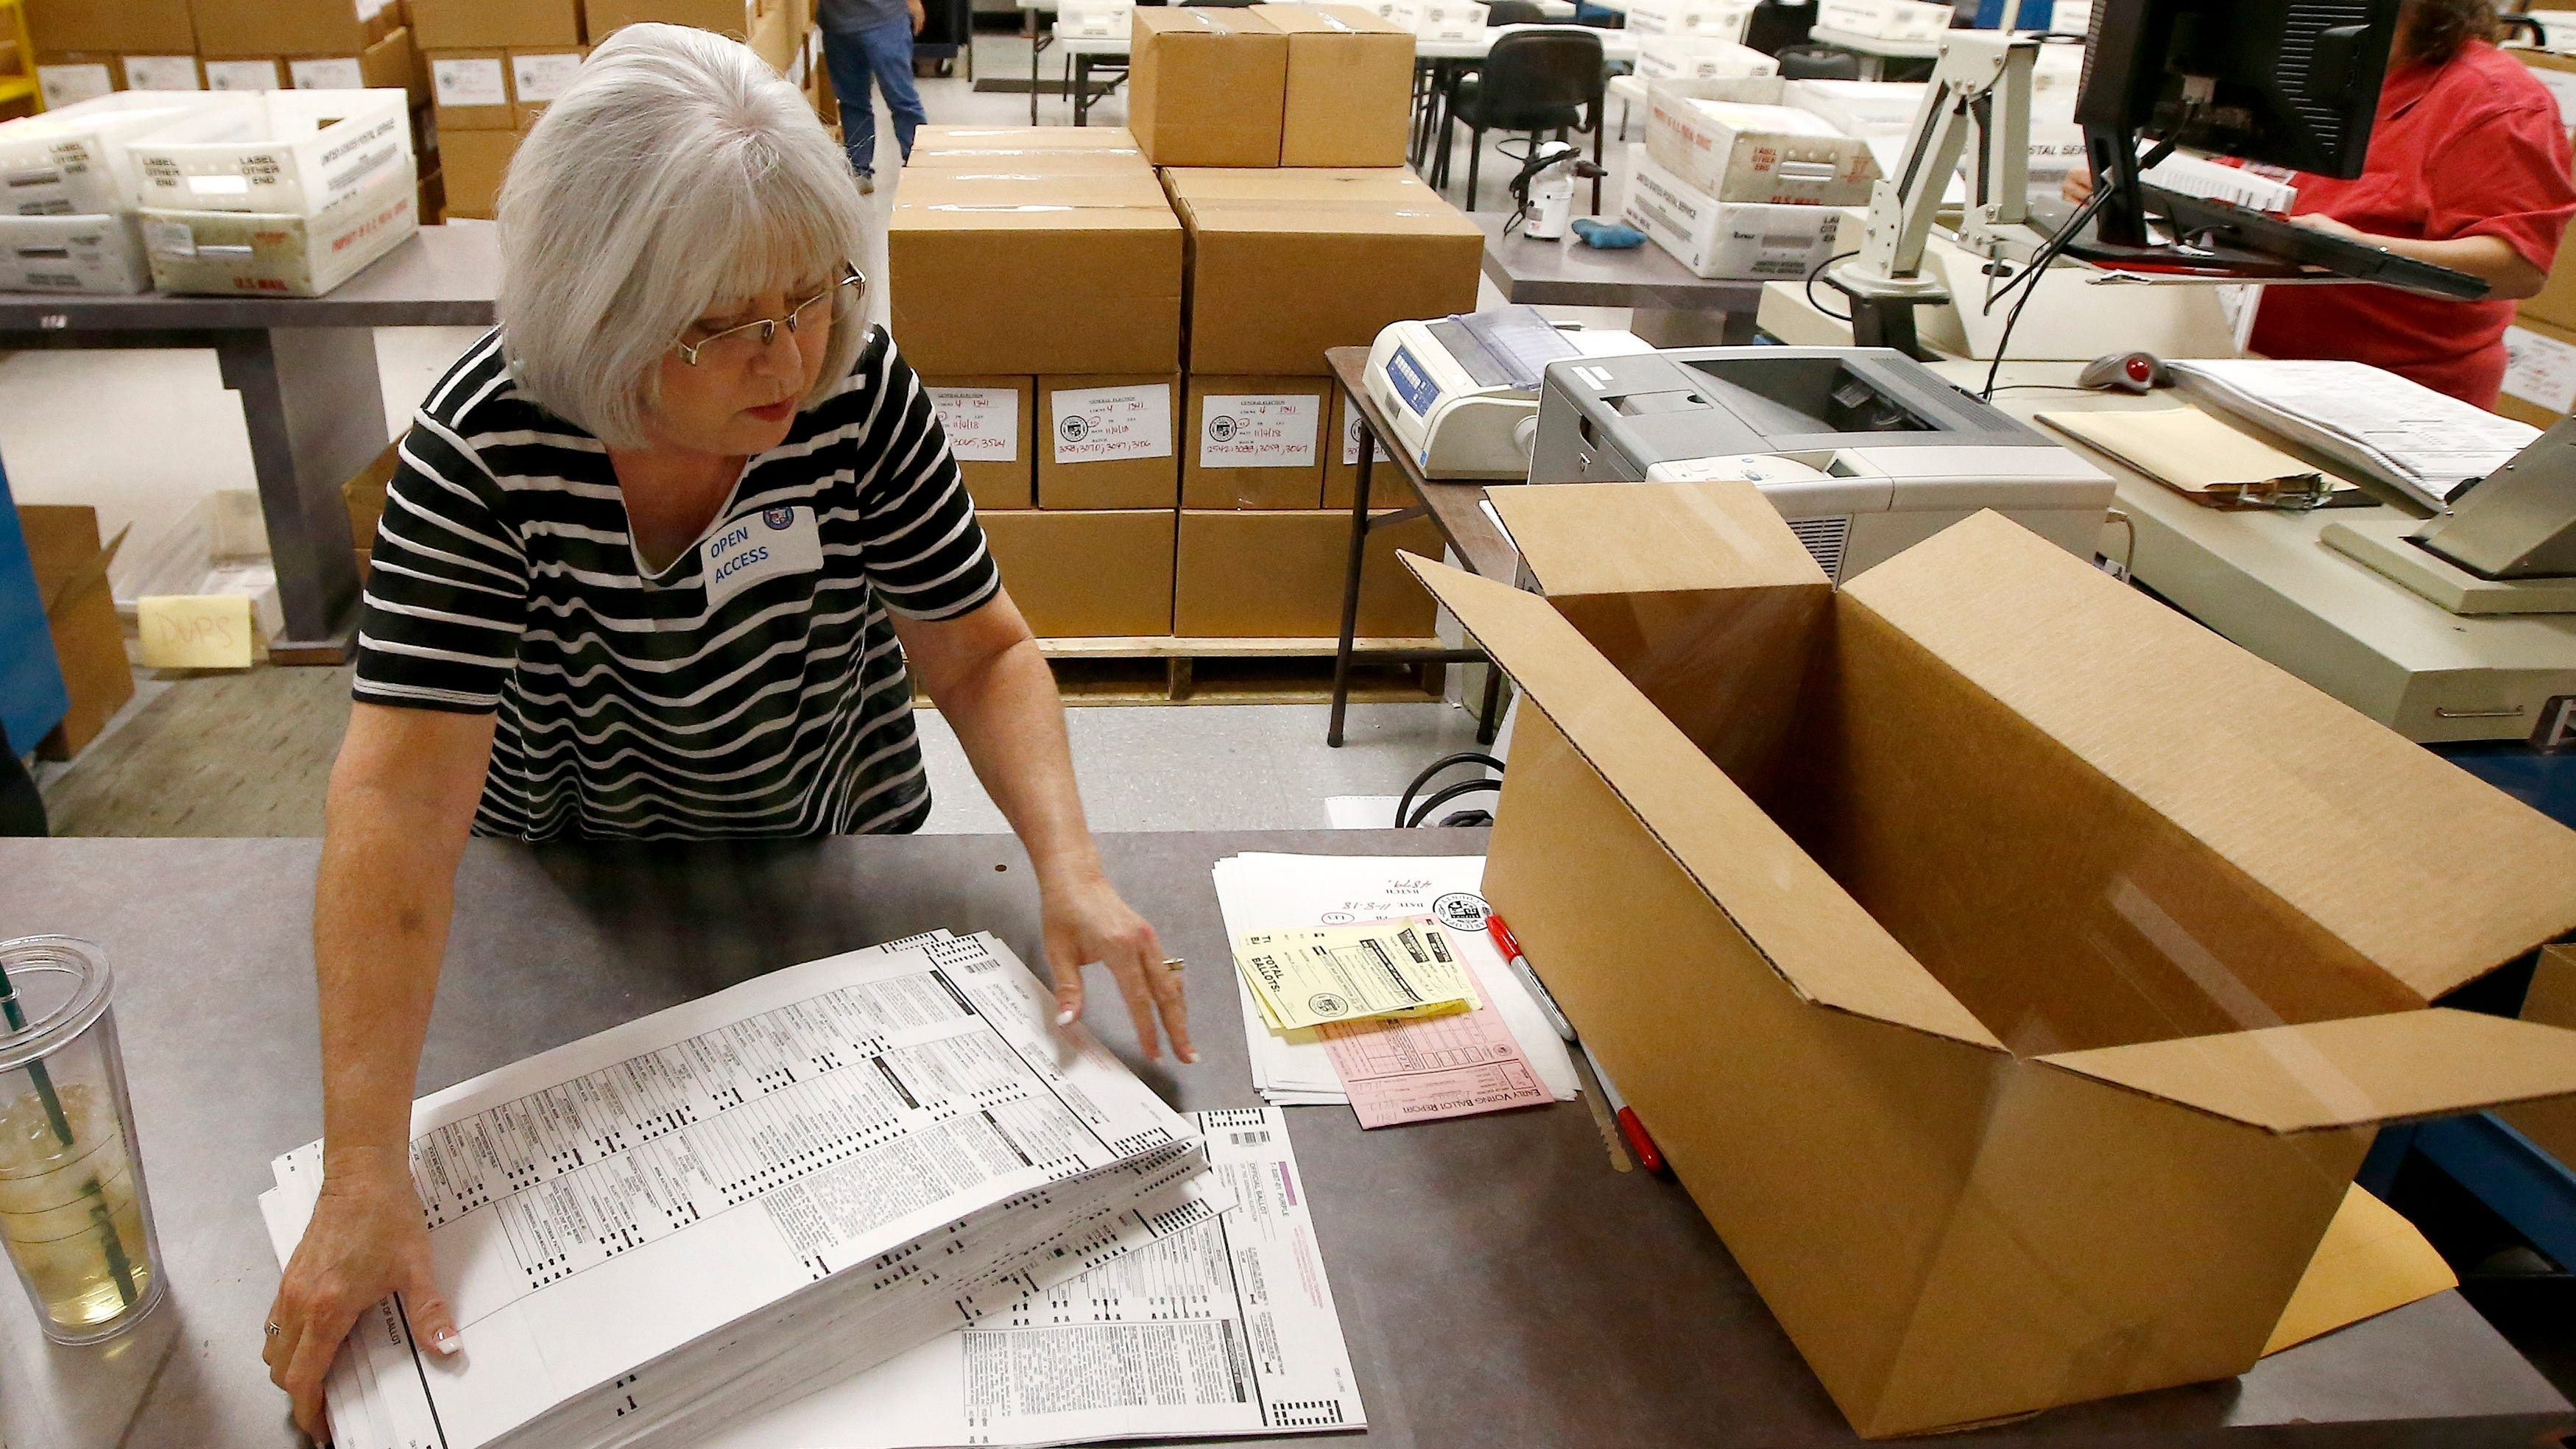 Workers at the Maricopa County Recorder's Office go through ballots Thursday, Nov. 8, 2018, in Phoenix. There are several races too close to call in Arizona, especially the Senate race between Democratic candidate Kyrsten Sinema and Republican candidate Martha McSally.\